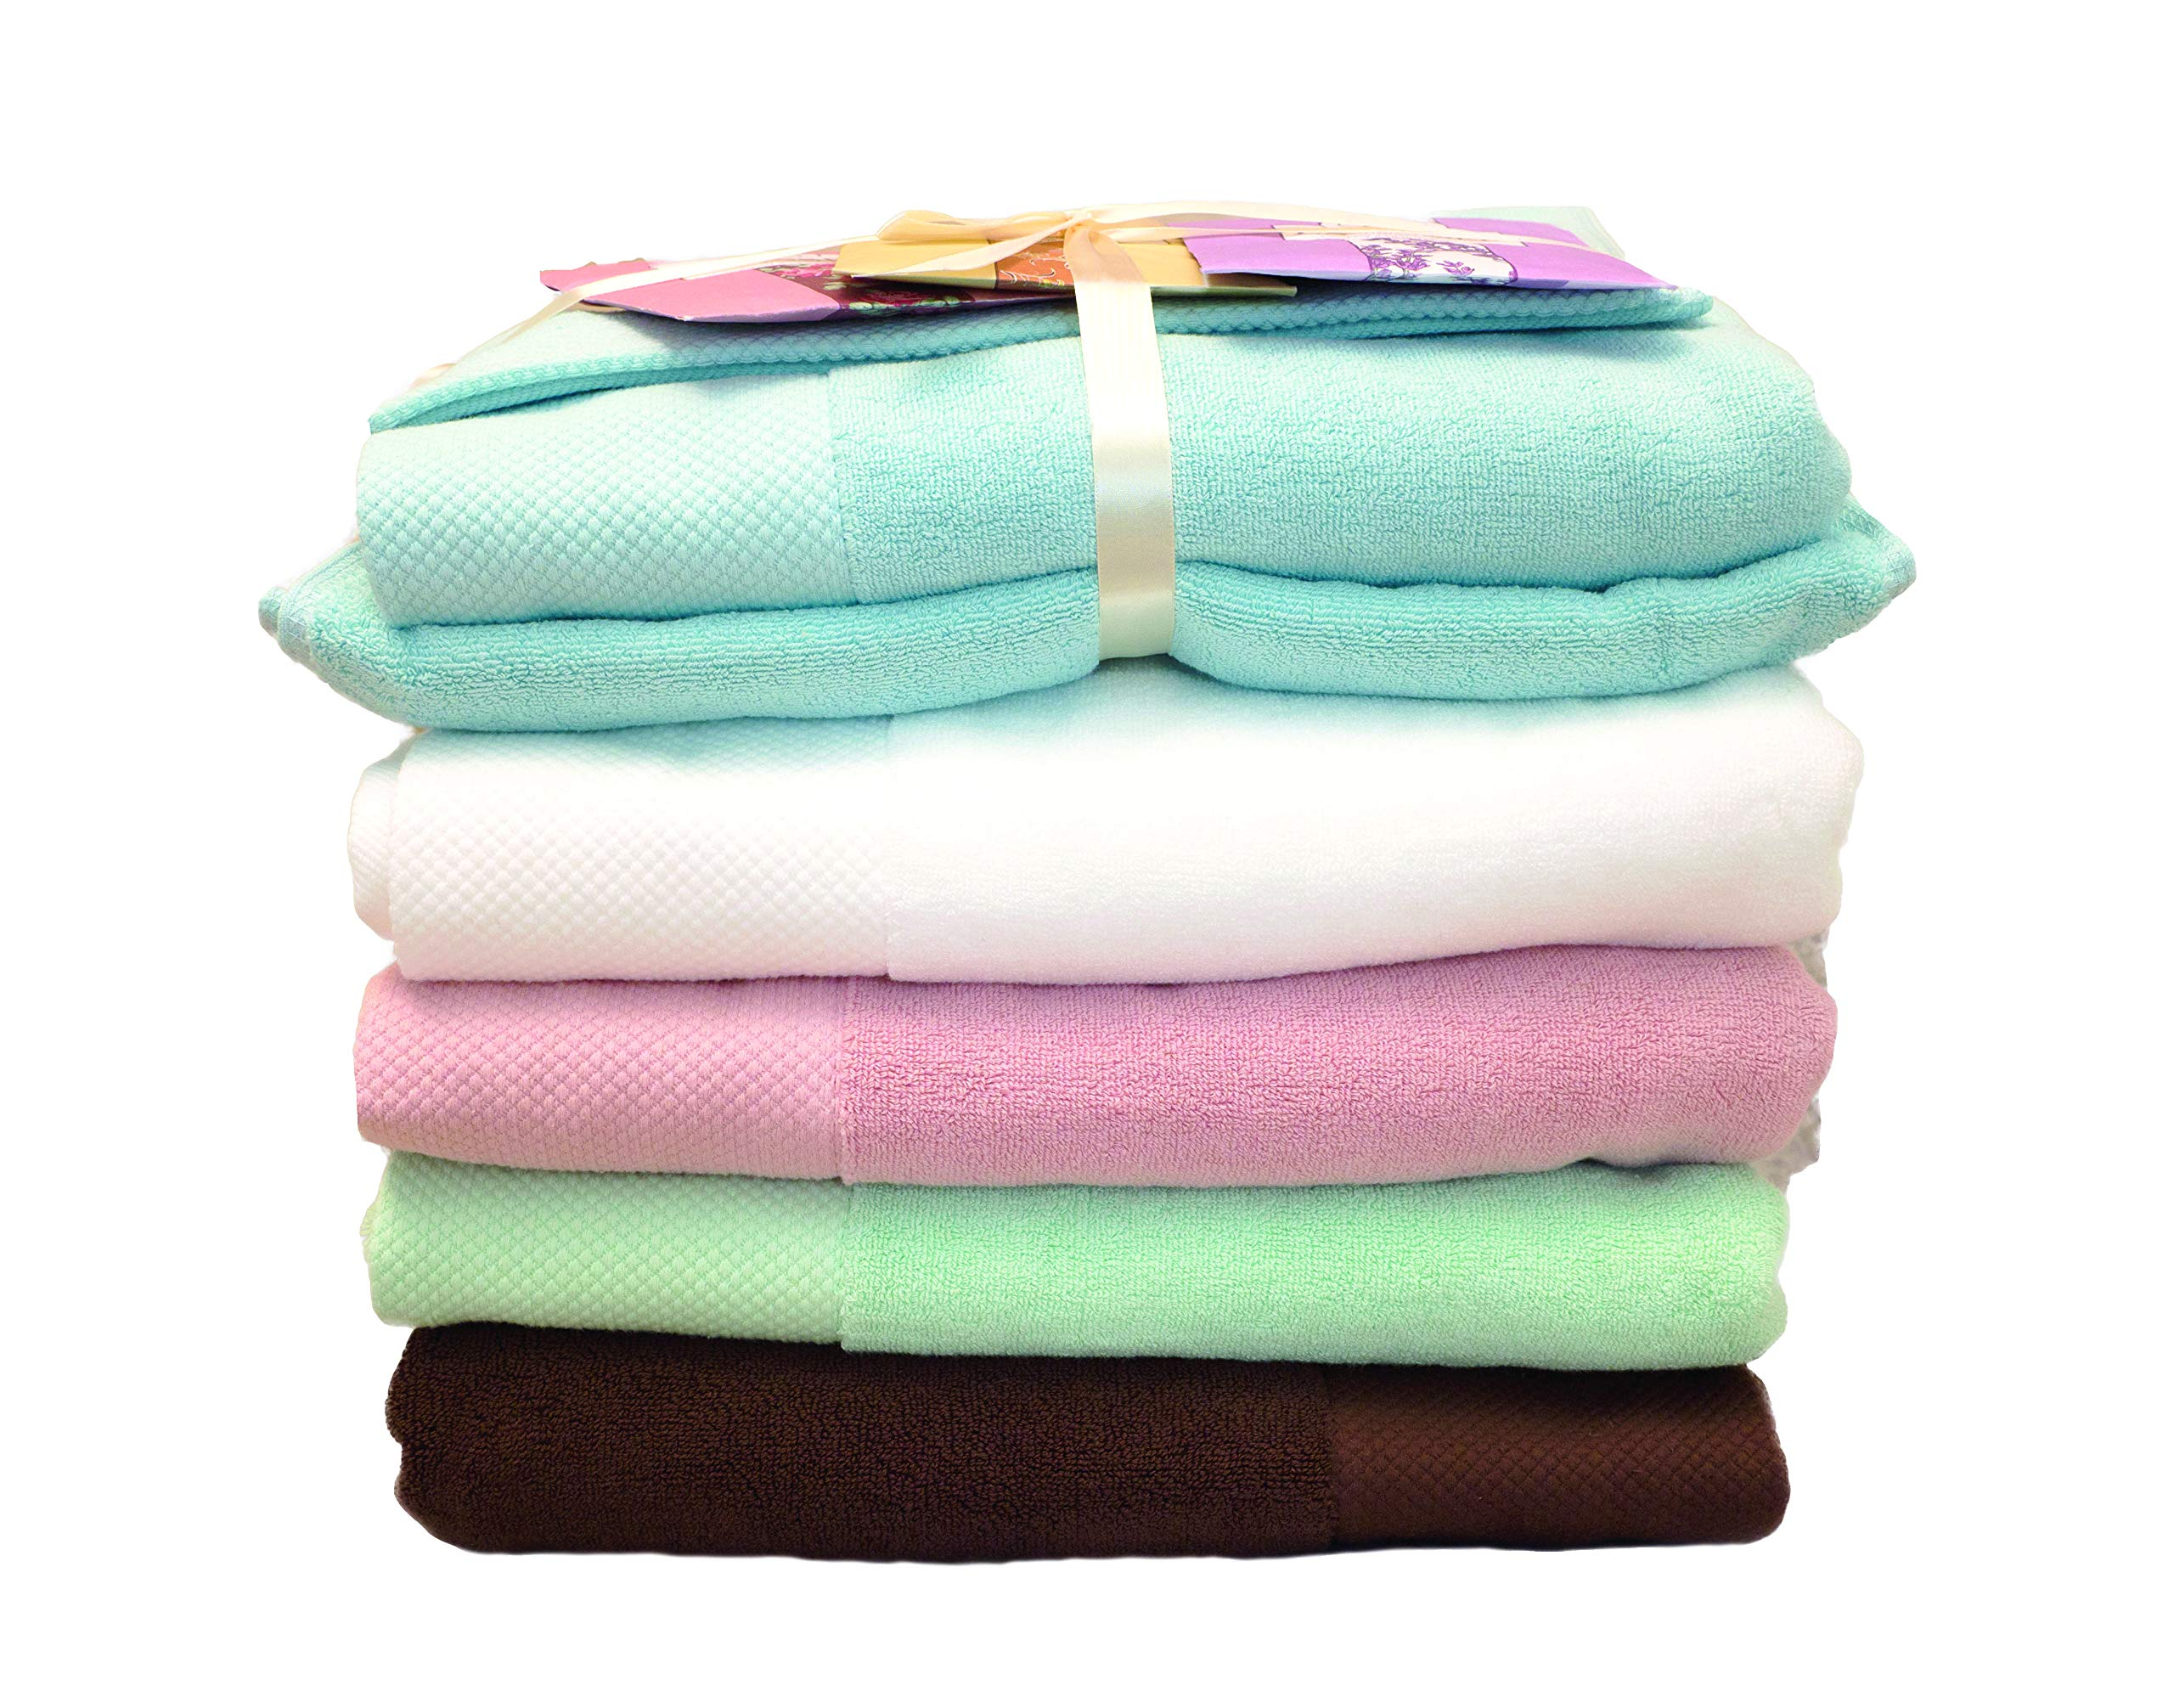 100% Organic Egyptian Cotton Bath Towel Set |Luxury Spa-Hotel Grade Face/Body/Hand Elegant Durable Quality Highly Absorbent, Premium Bath Linen | Stylish Oversized Eco-Friendly for Gift, White Towel